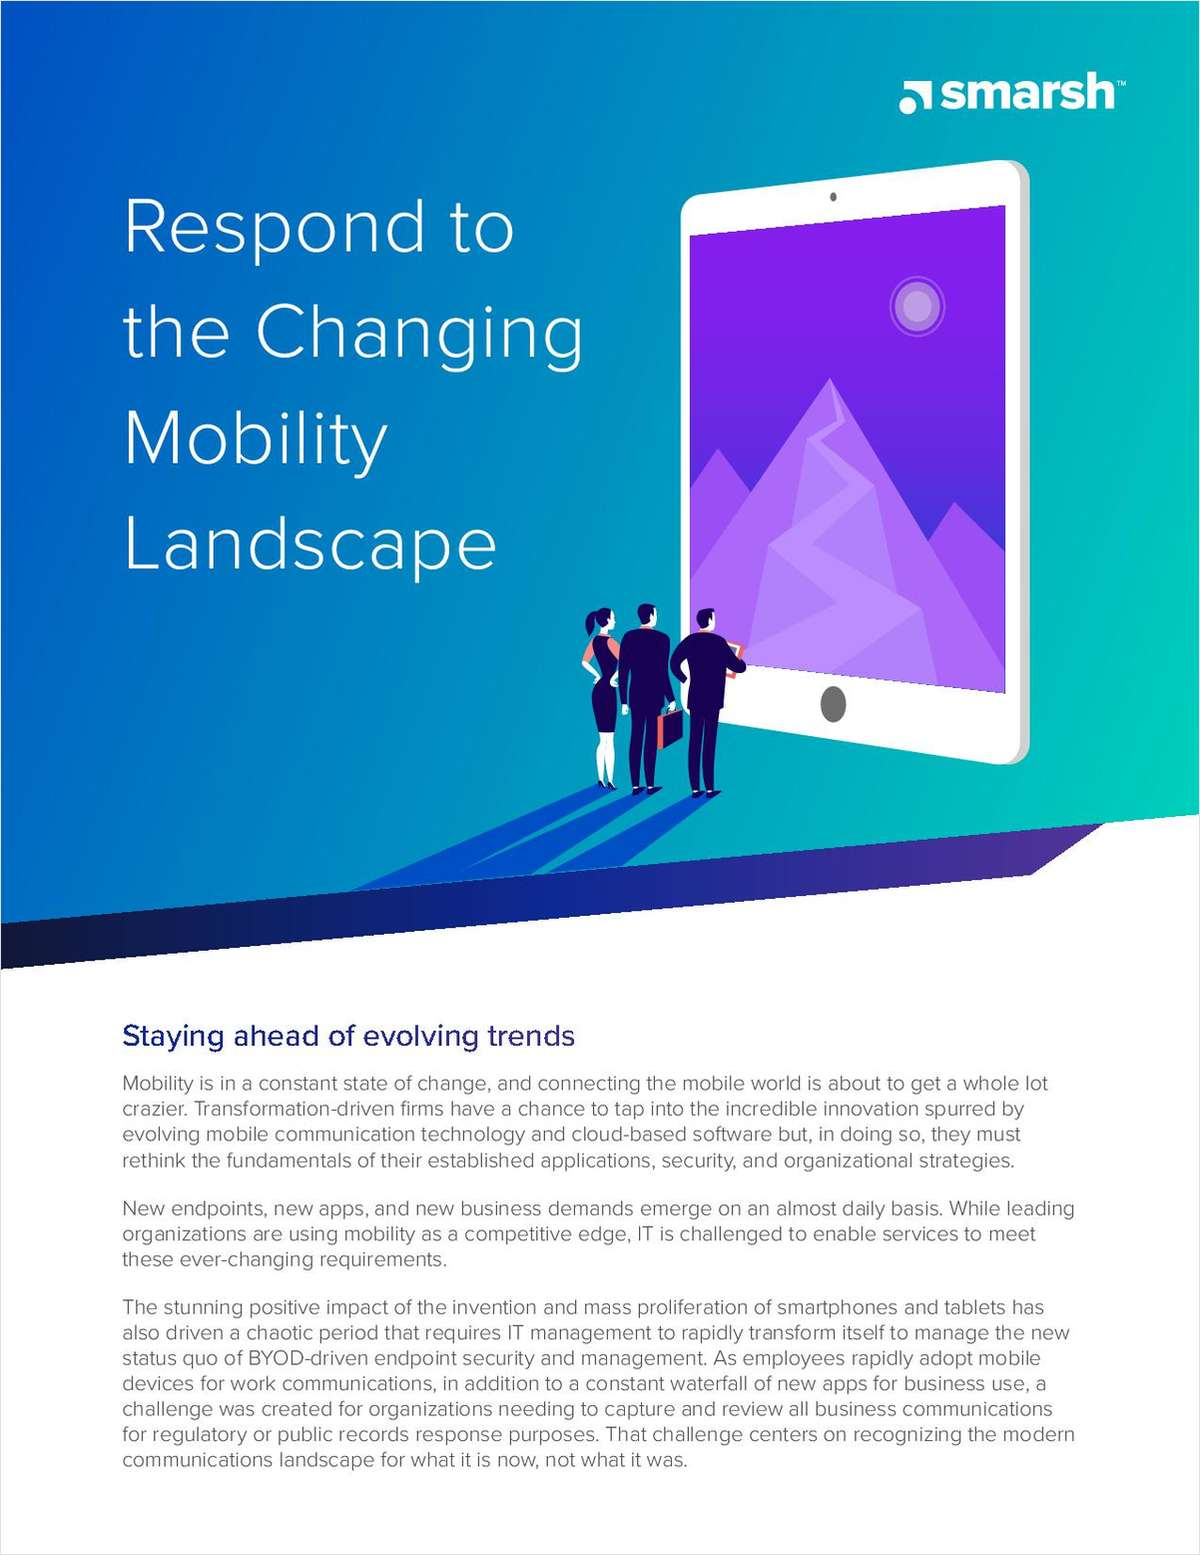 Respond to the Changing Mobility Landscape